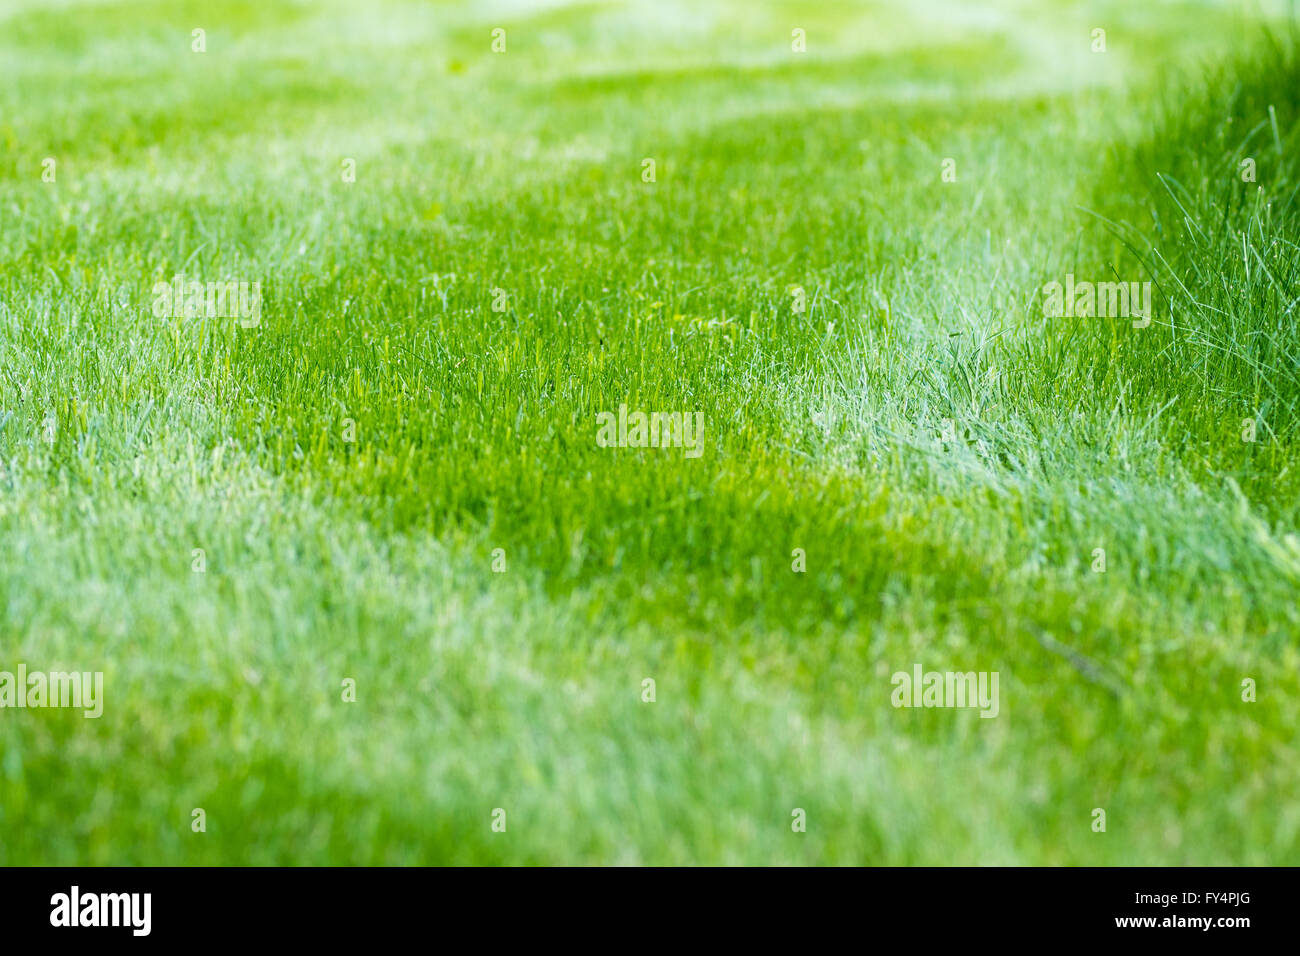 lawn grass with stripes - Stock Image